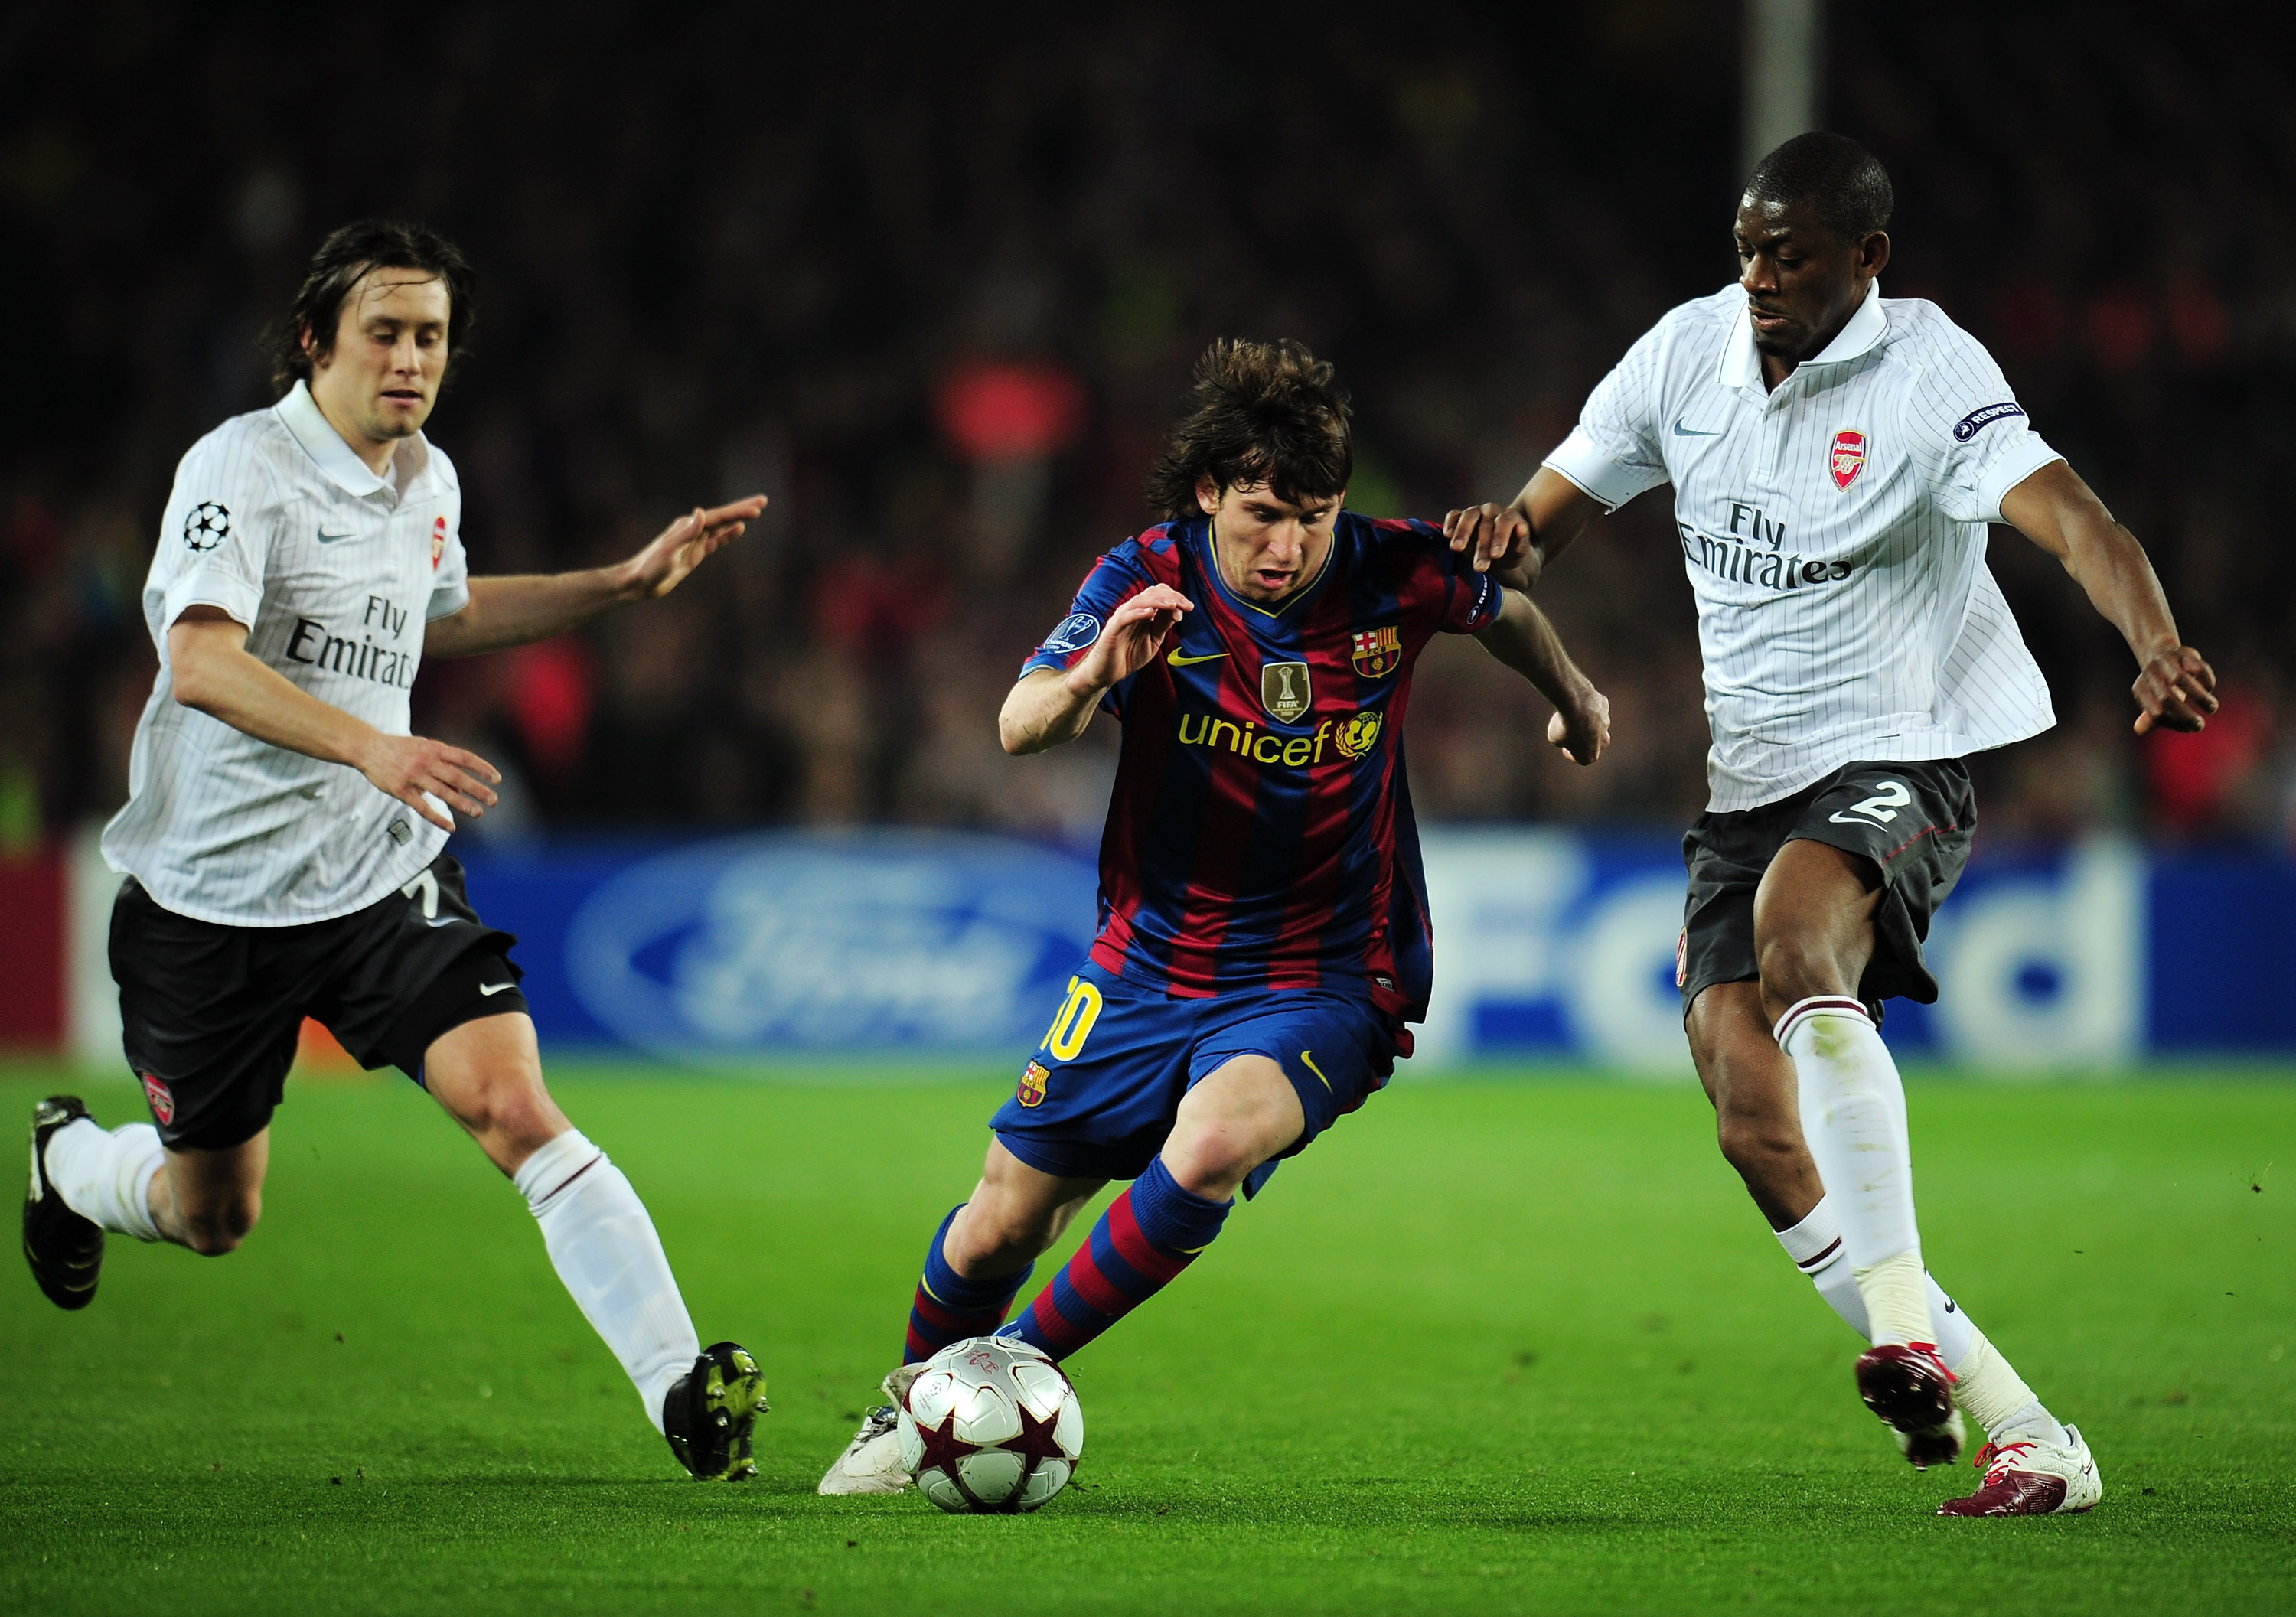 BARCELONA, SPAIN - APRIL 06:  Lionel Messi of Barcelona dribbles the ball during the UEFA Champions League quarter final second leg match between Barcelona and Arsenal at Camp Nou on April 6, 2010 in Barcelona, Spain.  (Photo by Shaun Botterill/Getty Imag